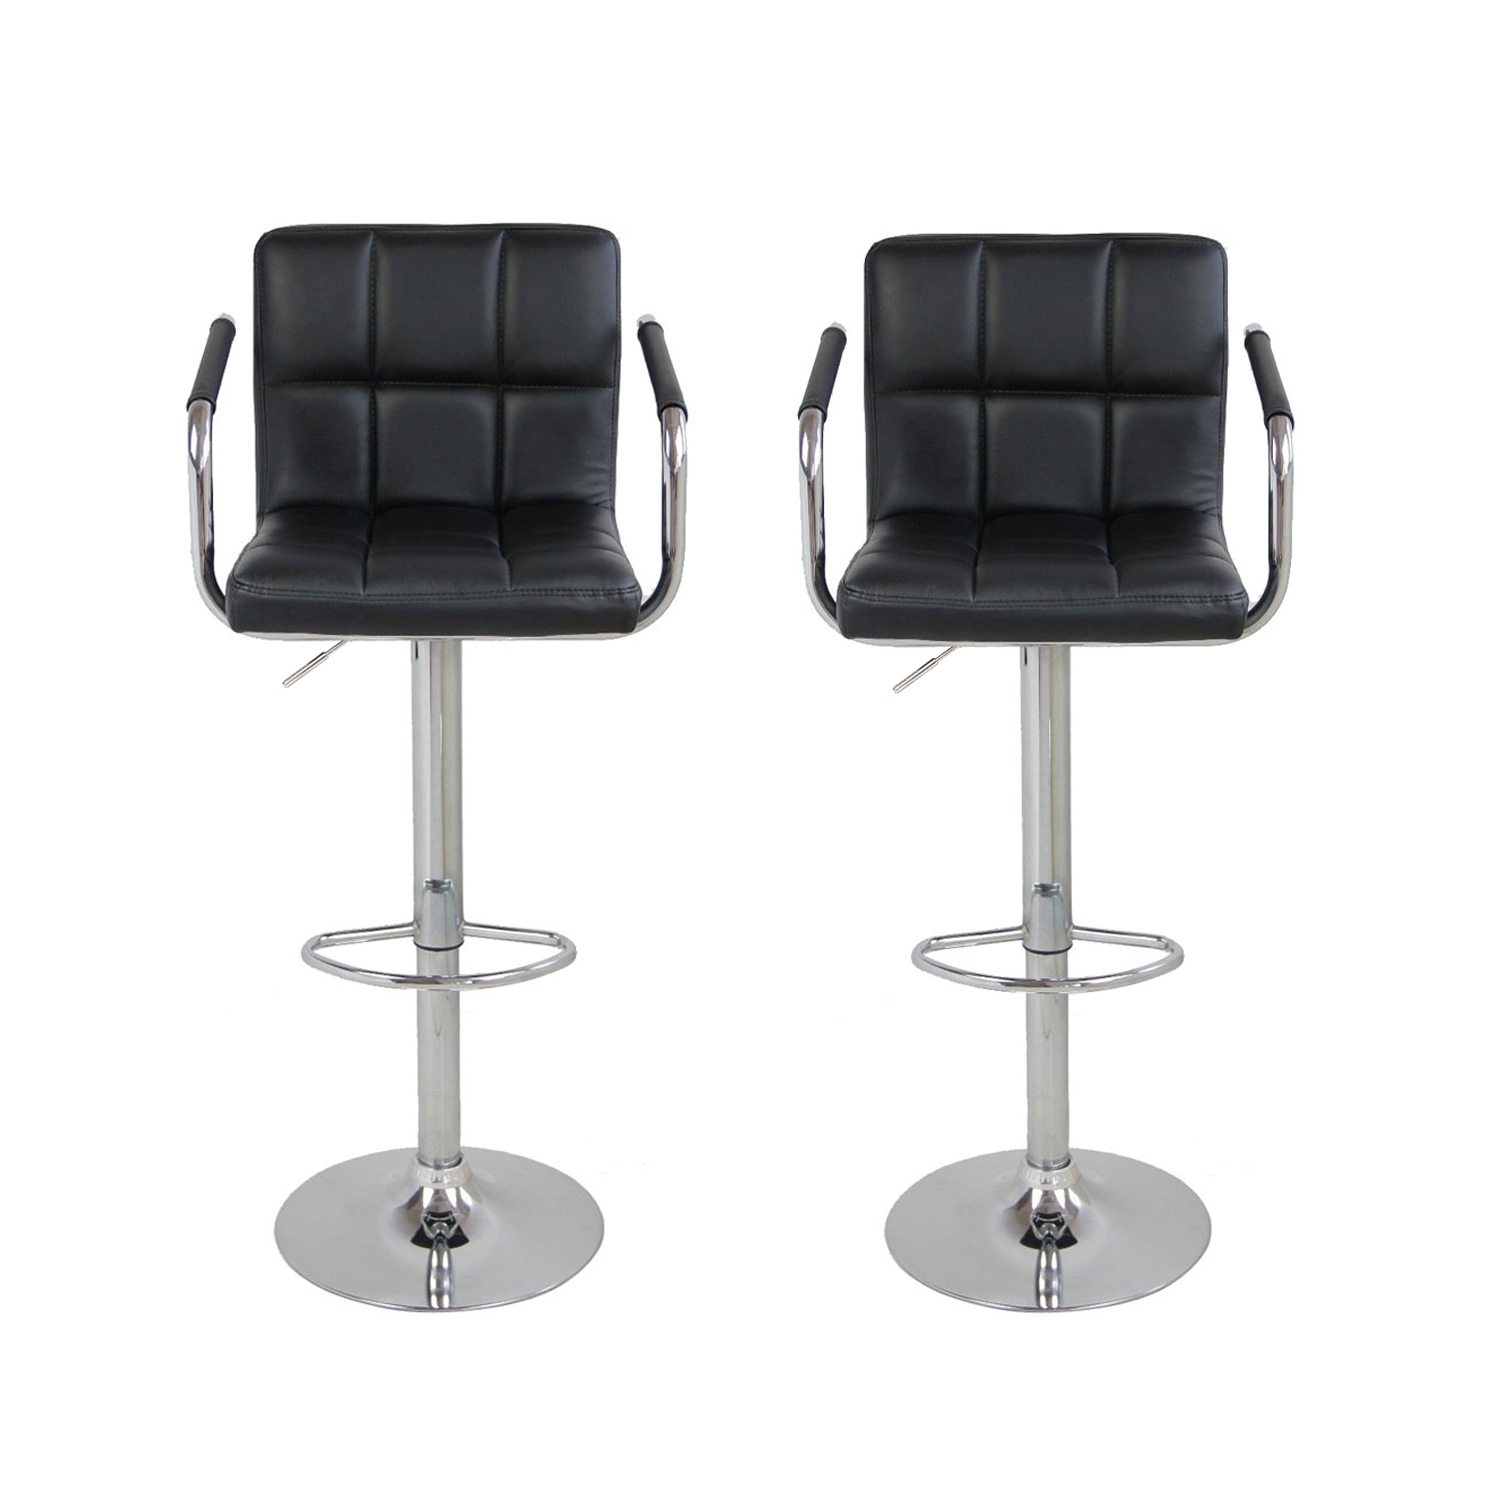 UBesGoo Furniture Direct Black Leather Adjustable Height Swivel Barstool Set with Armrest and Footrest (Set of 2)